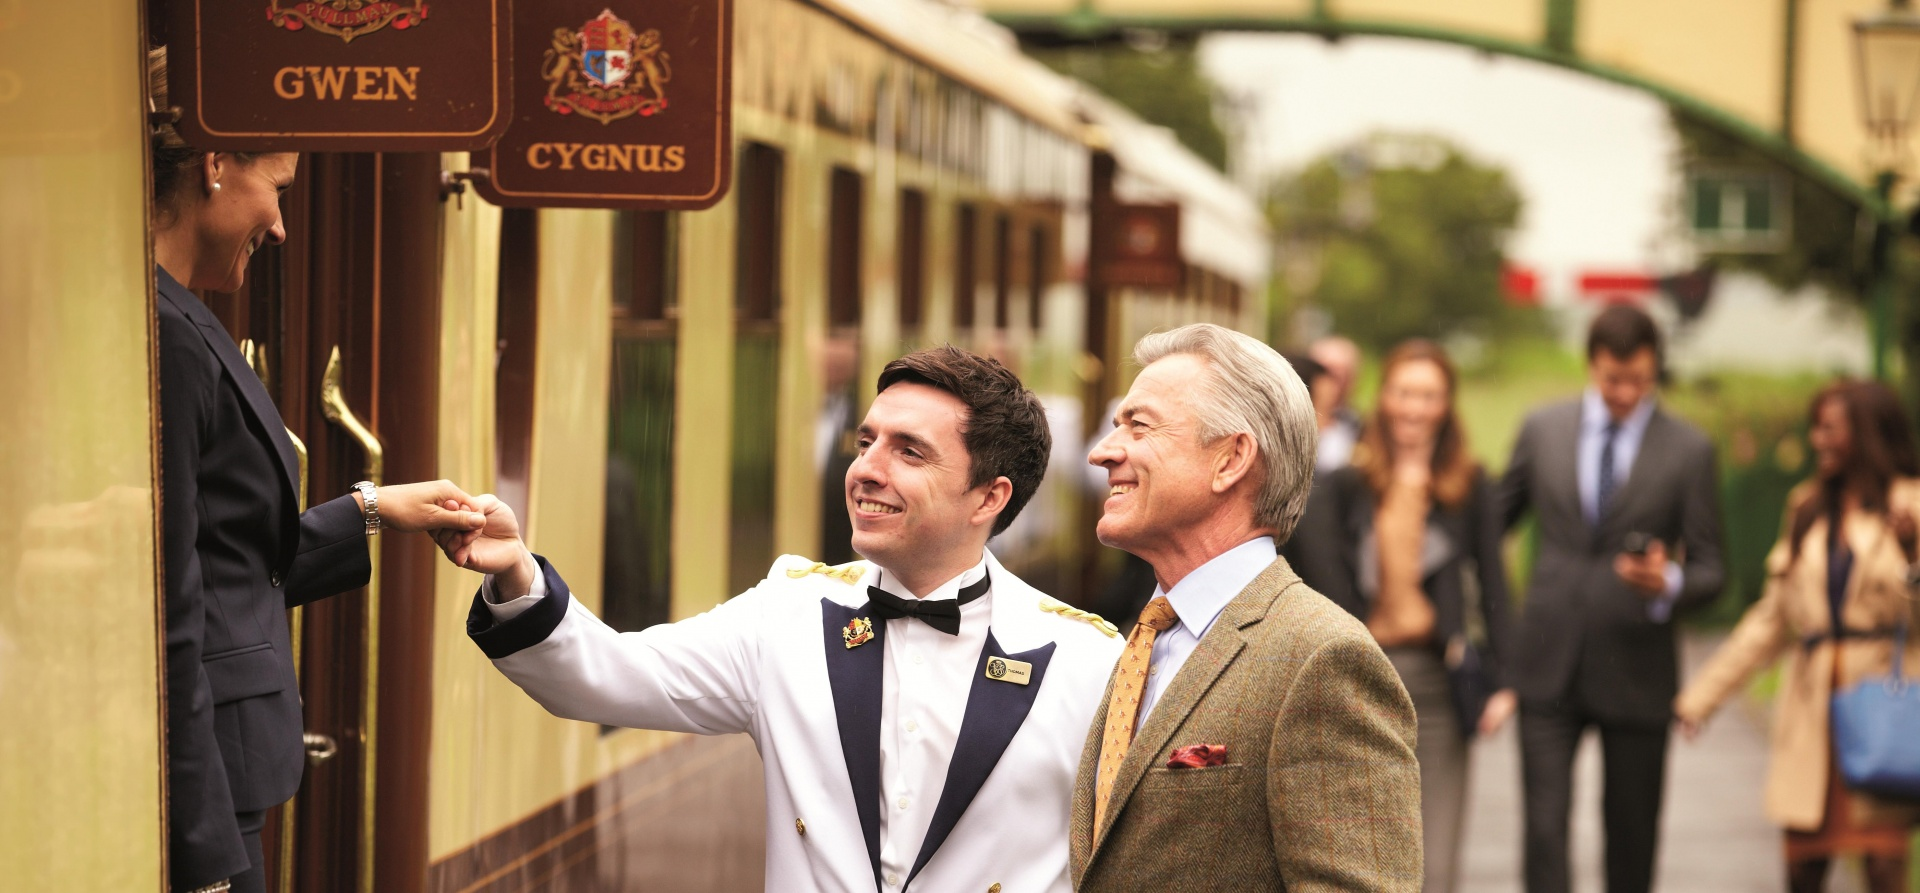 Day Excursions Aboard The Belmond British Pullman-2